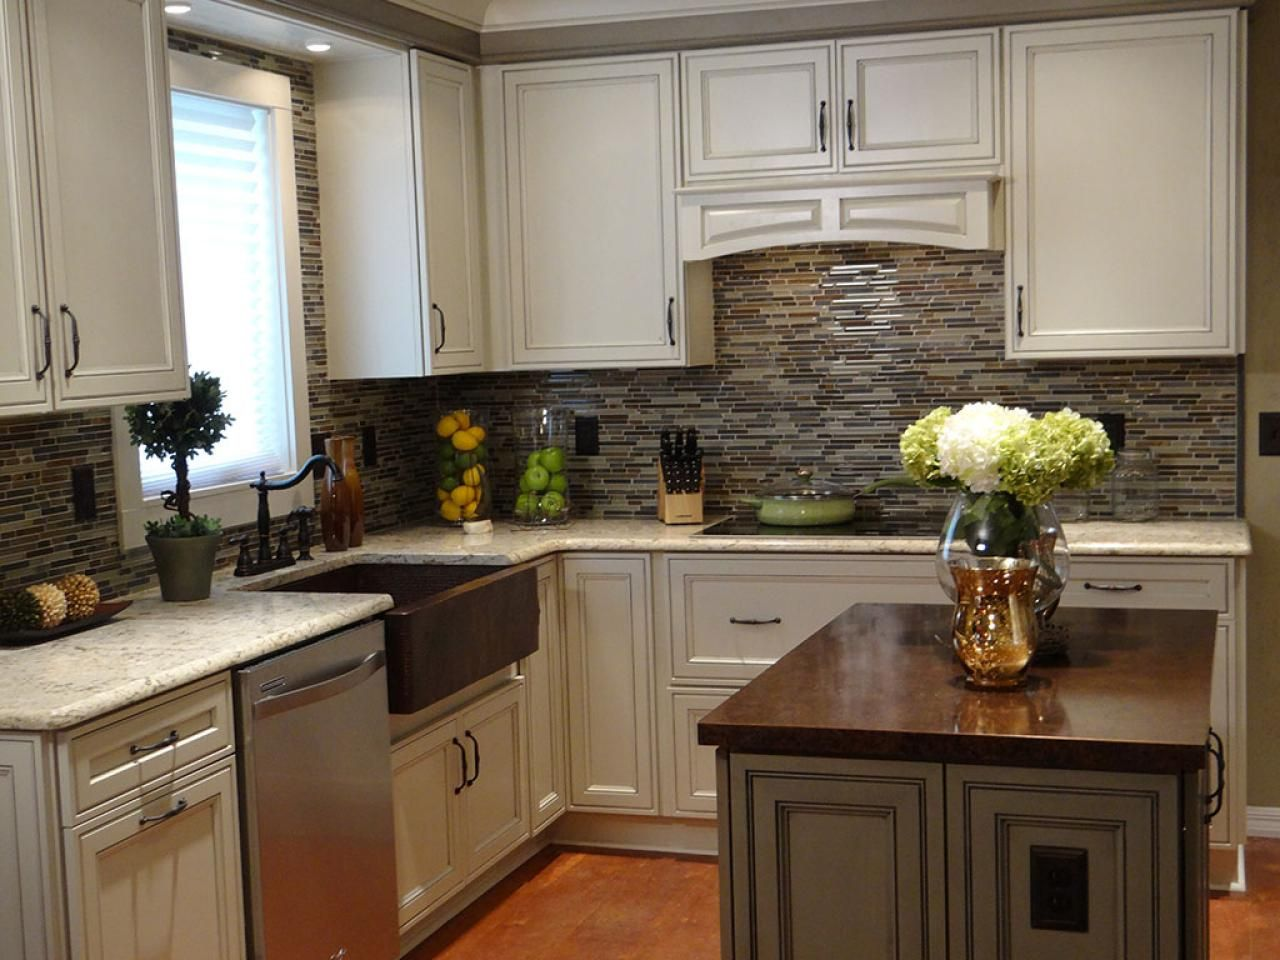 20 Small Kitchen Makeovers by HGTV Hosts | Small kitchen ...